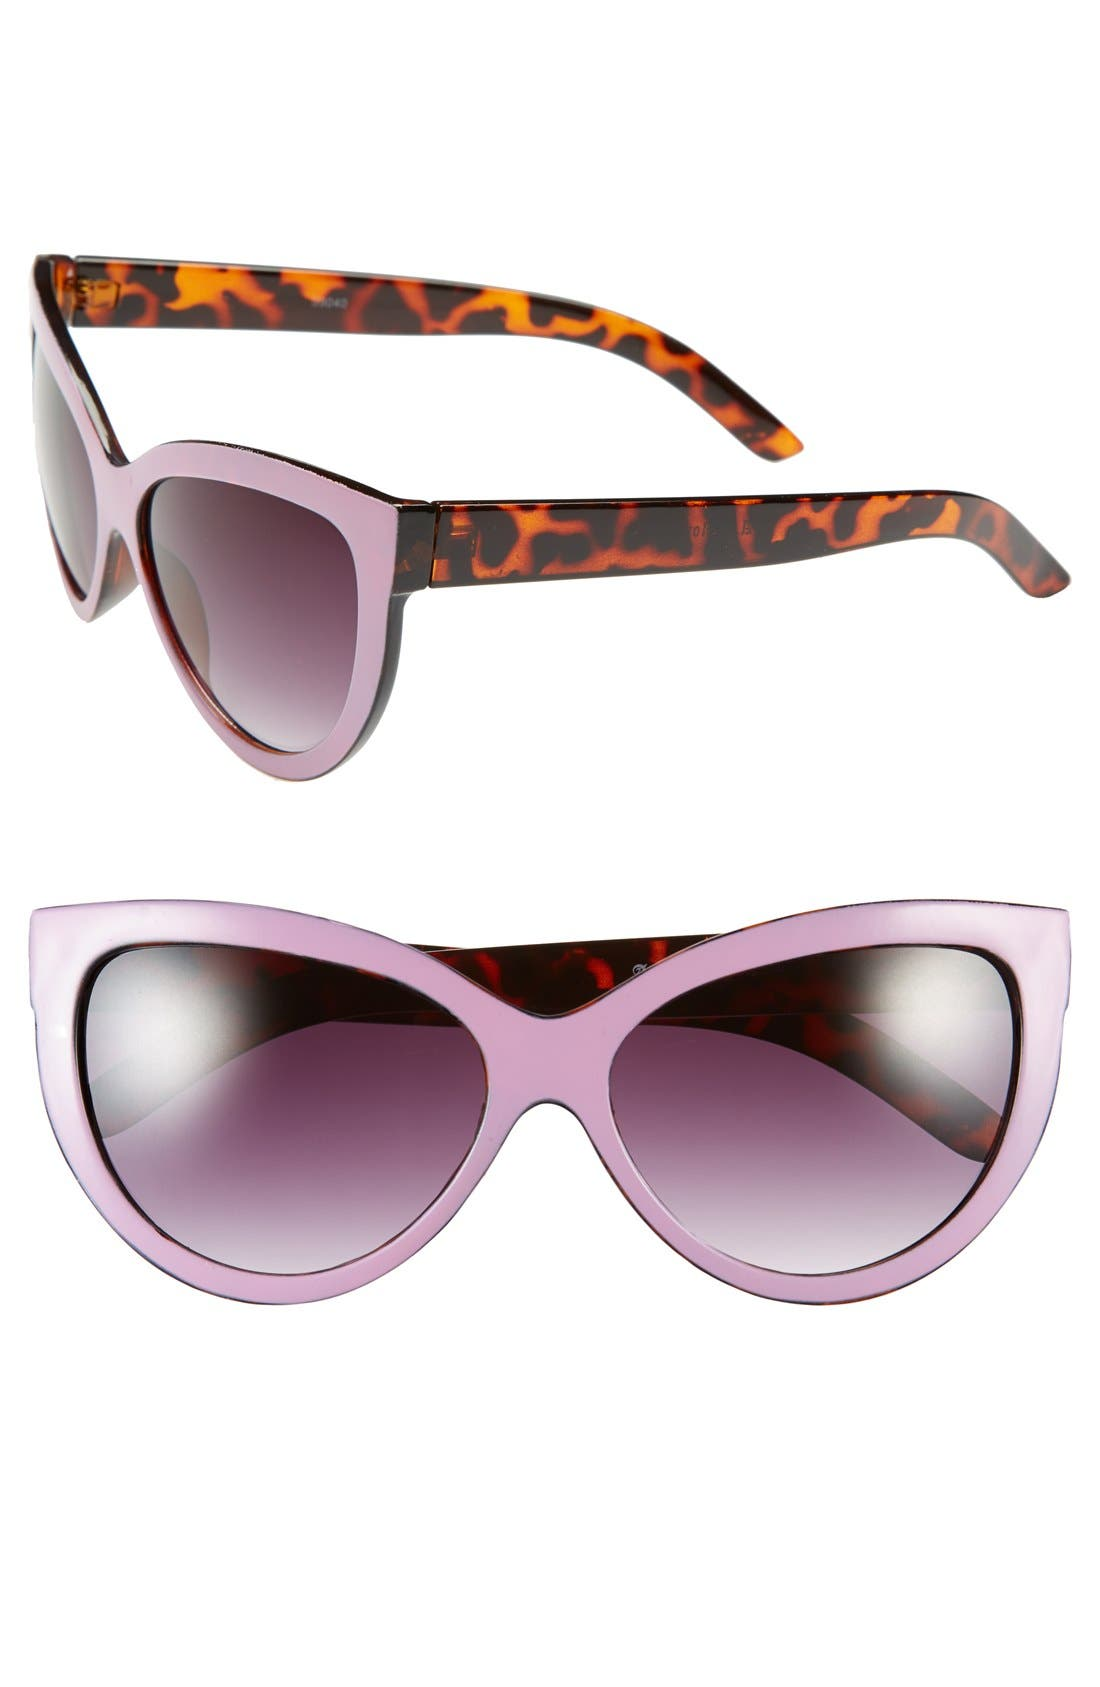 Main Image - A.J. Morgan 'Love Story' 57mm Cat Eye Sunglasses